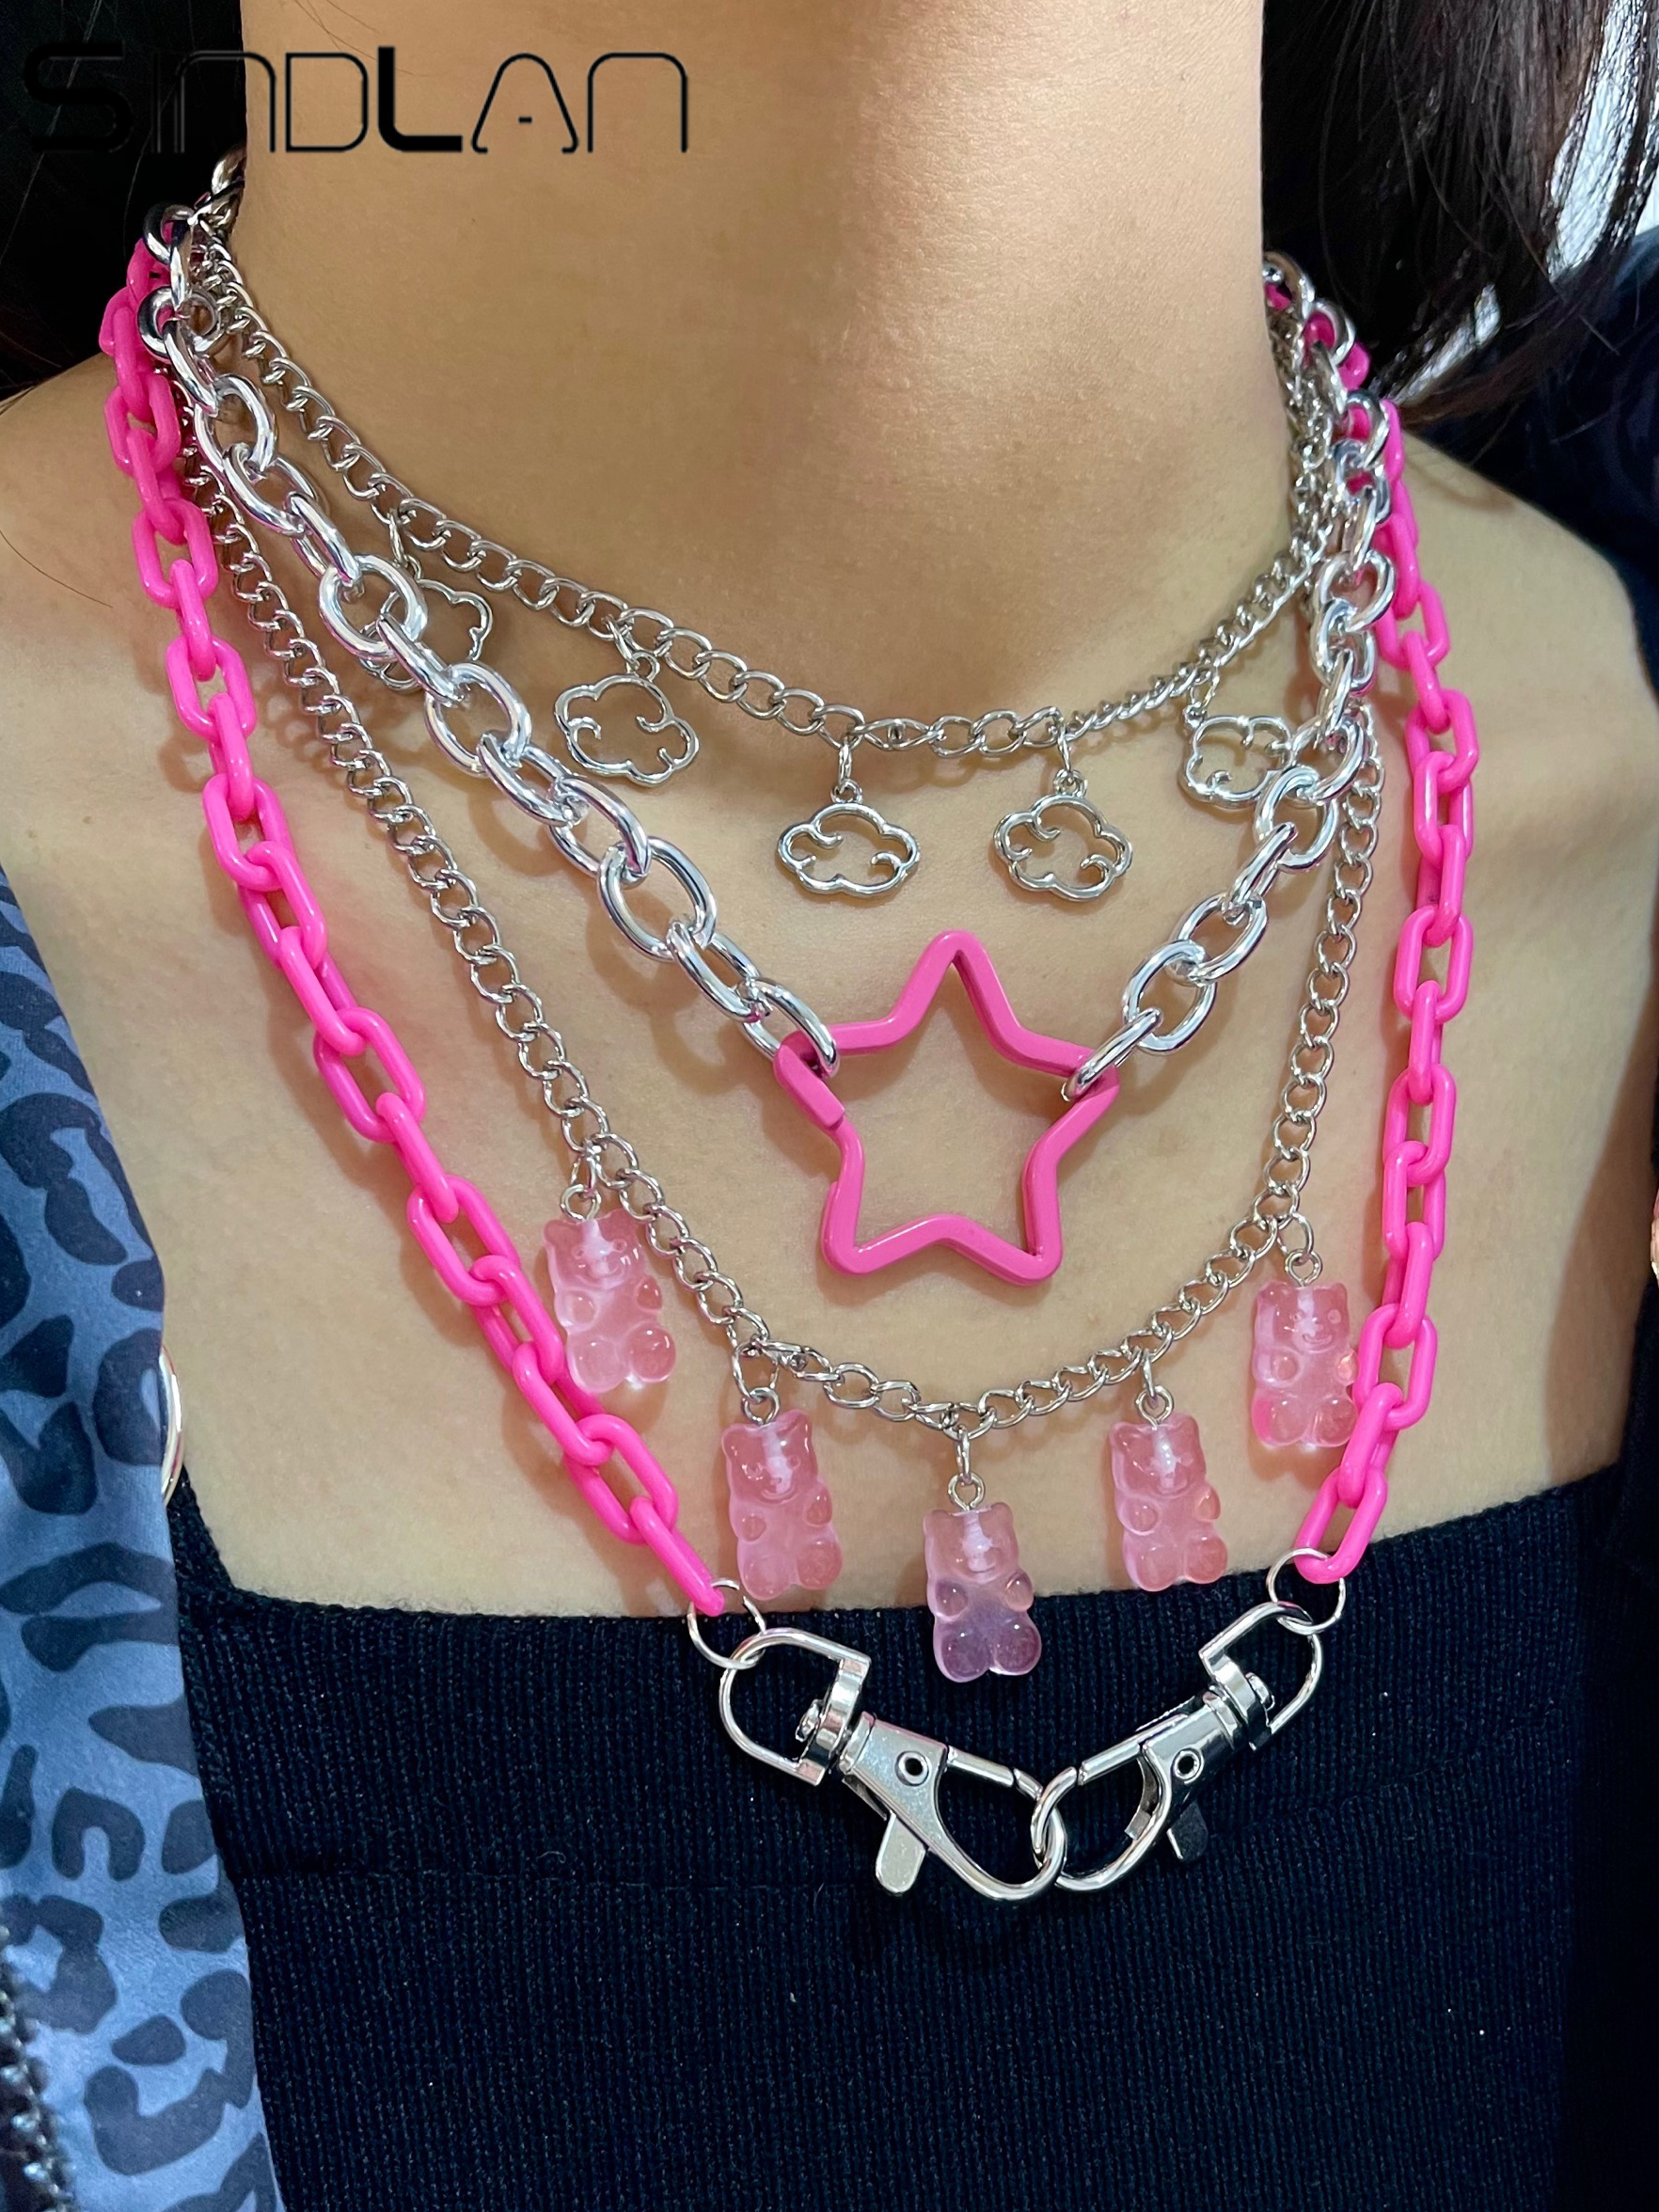 Punk Pendant Necklace Set for Women Chain with Gift Silver Color Cloud Cute Funny Kpop Pink Bear Y2k EMO Female Handmade Jewelry